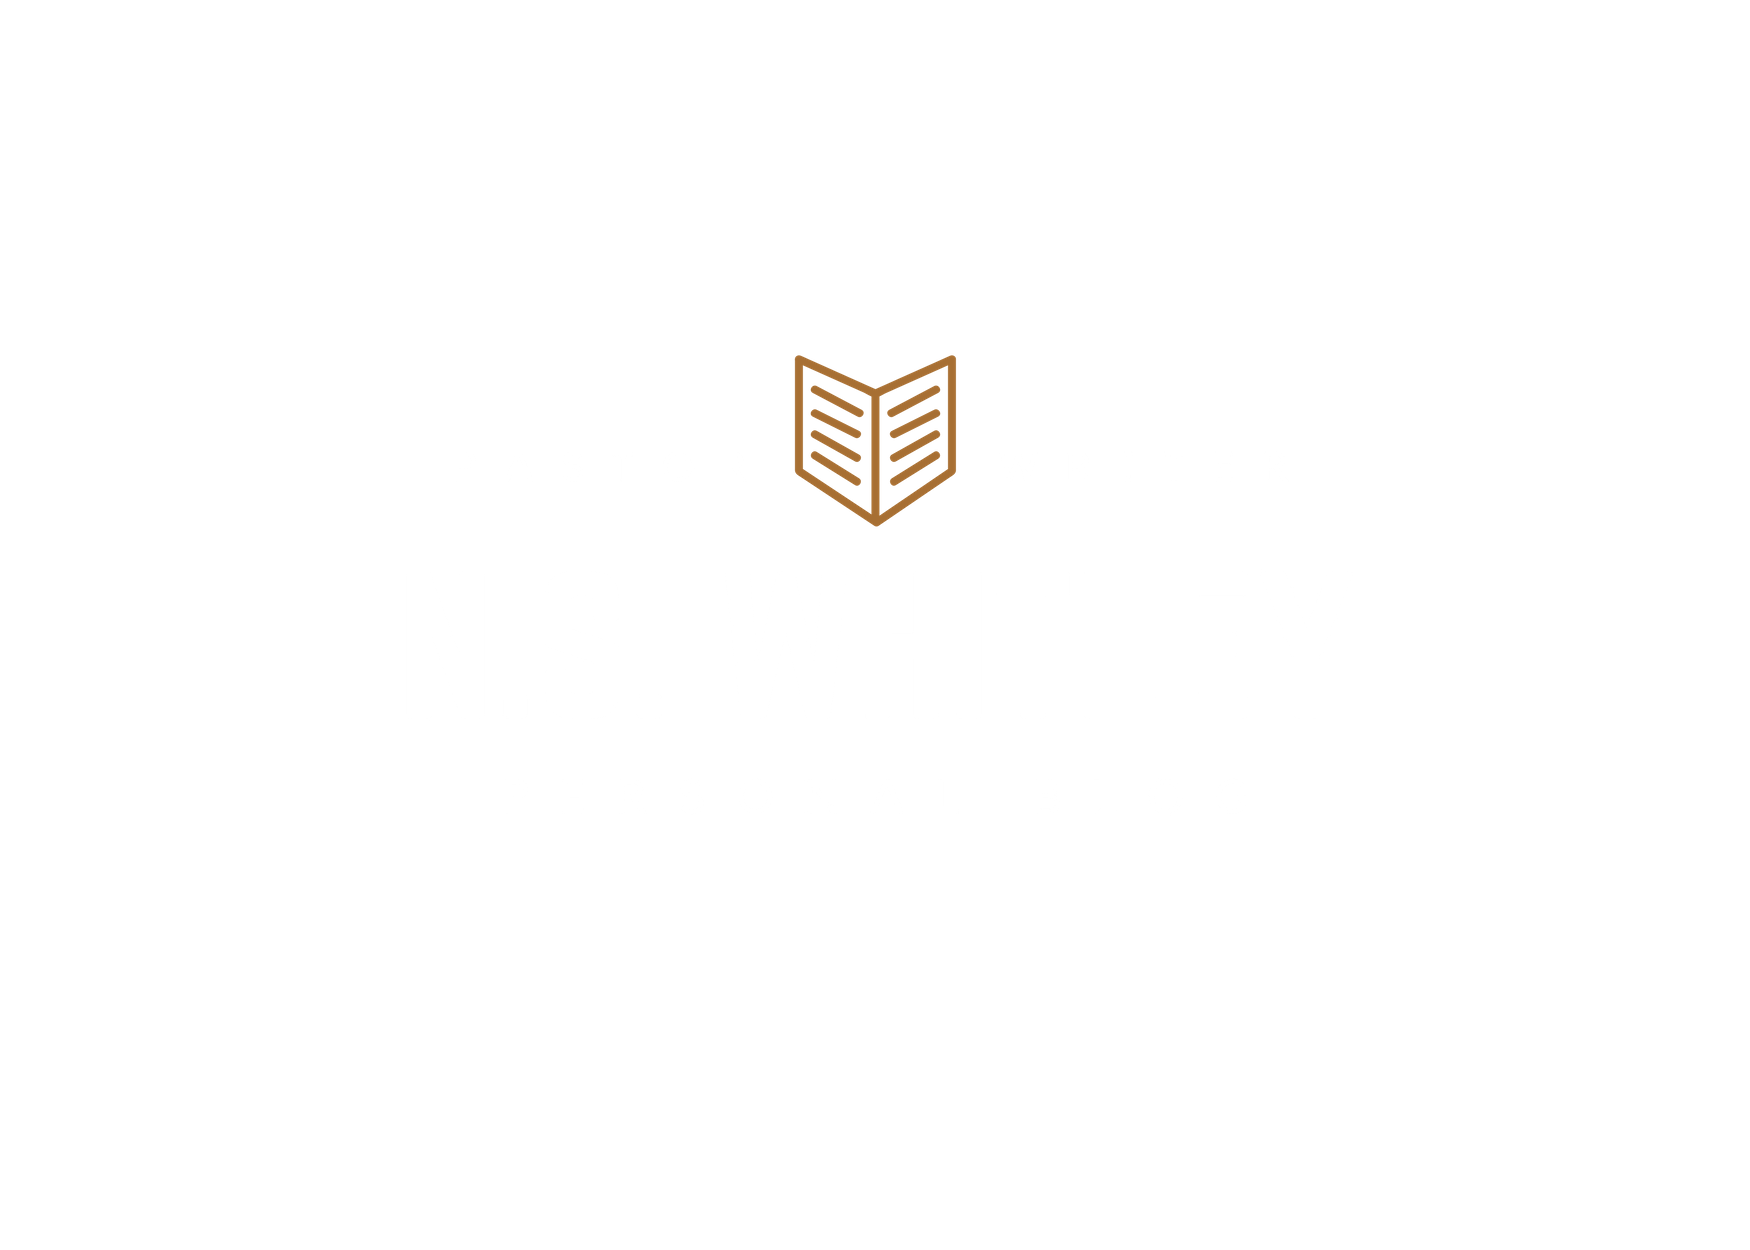 The Personal Blog of N.S. Whitley